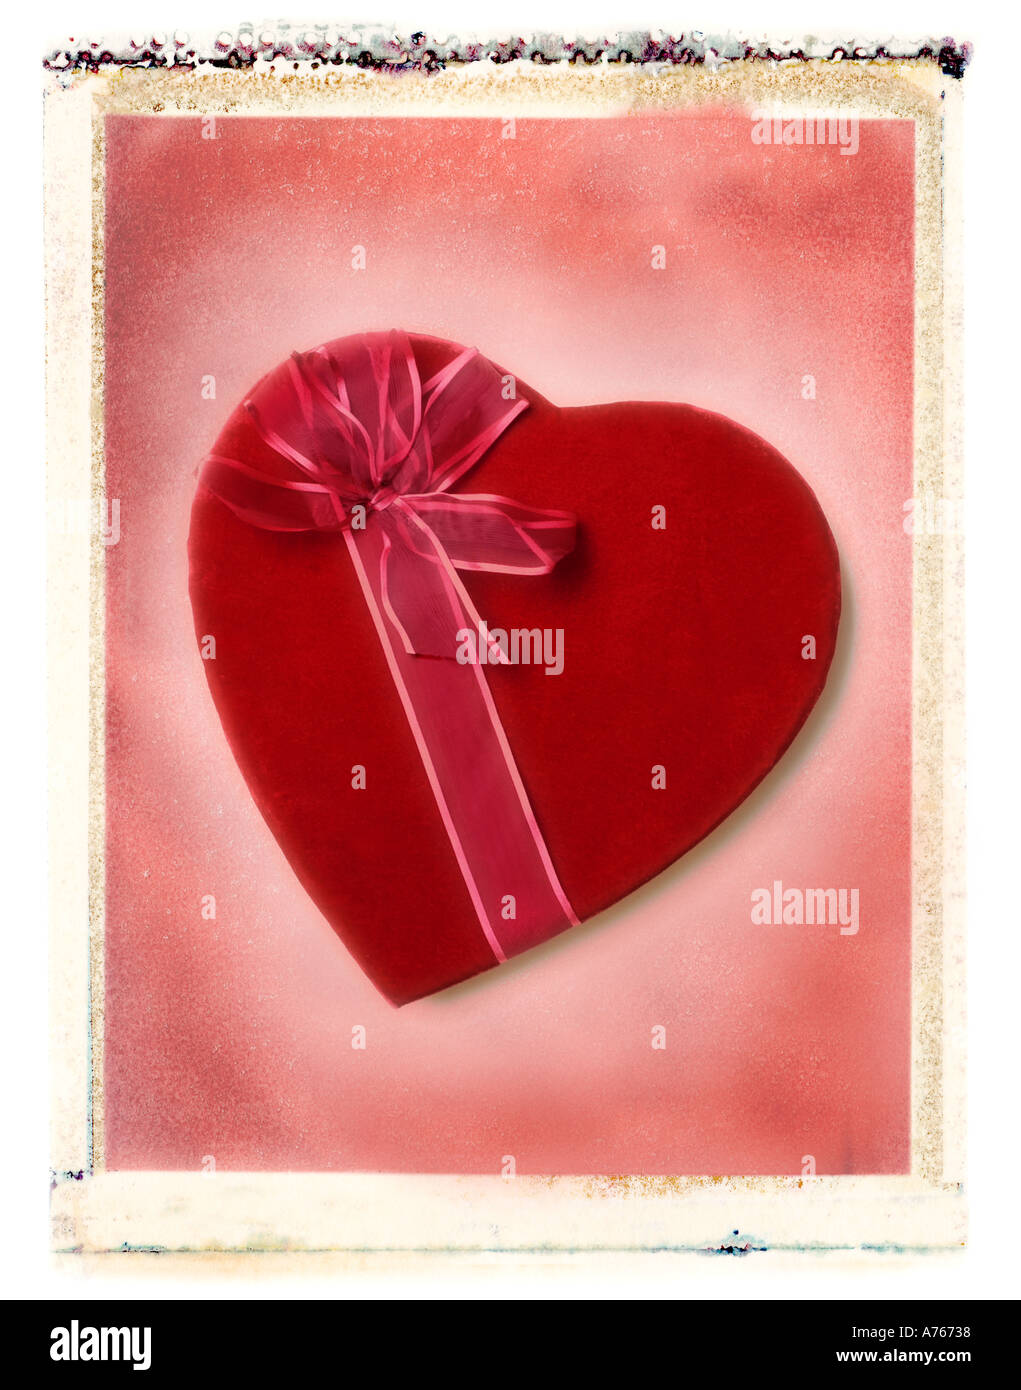 Valentine s day candy heart gift Photo Stock